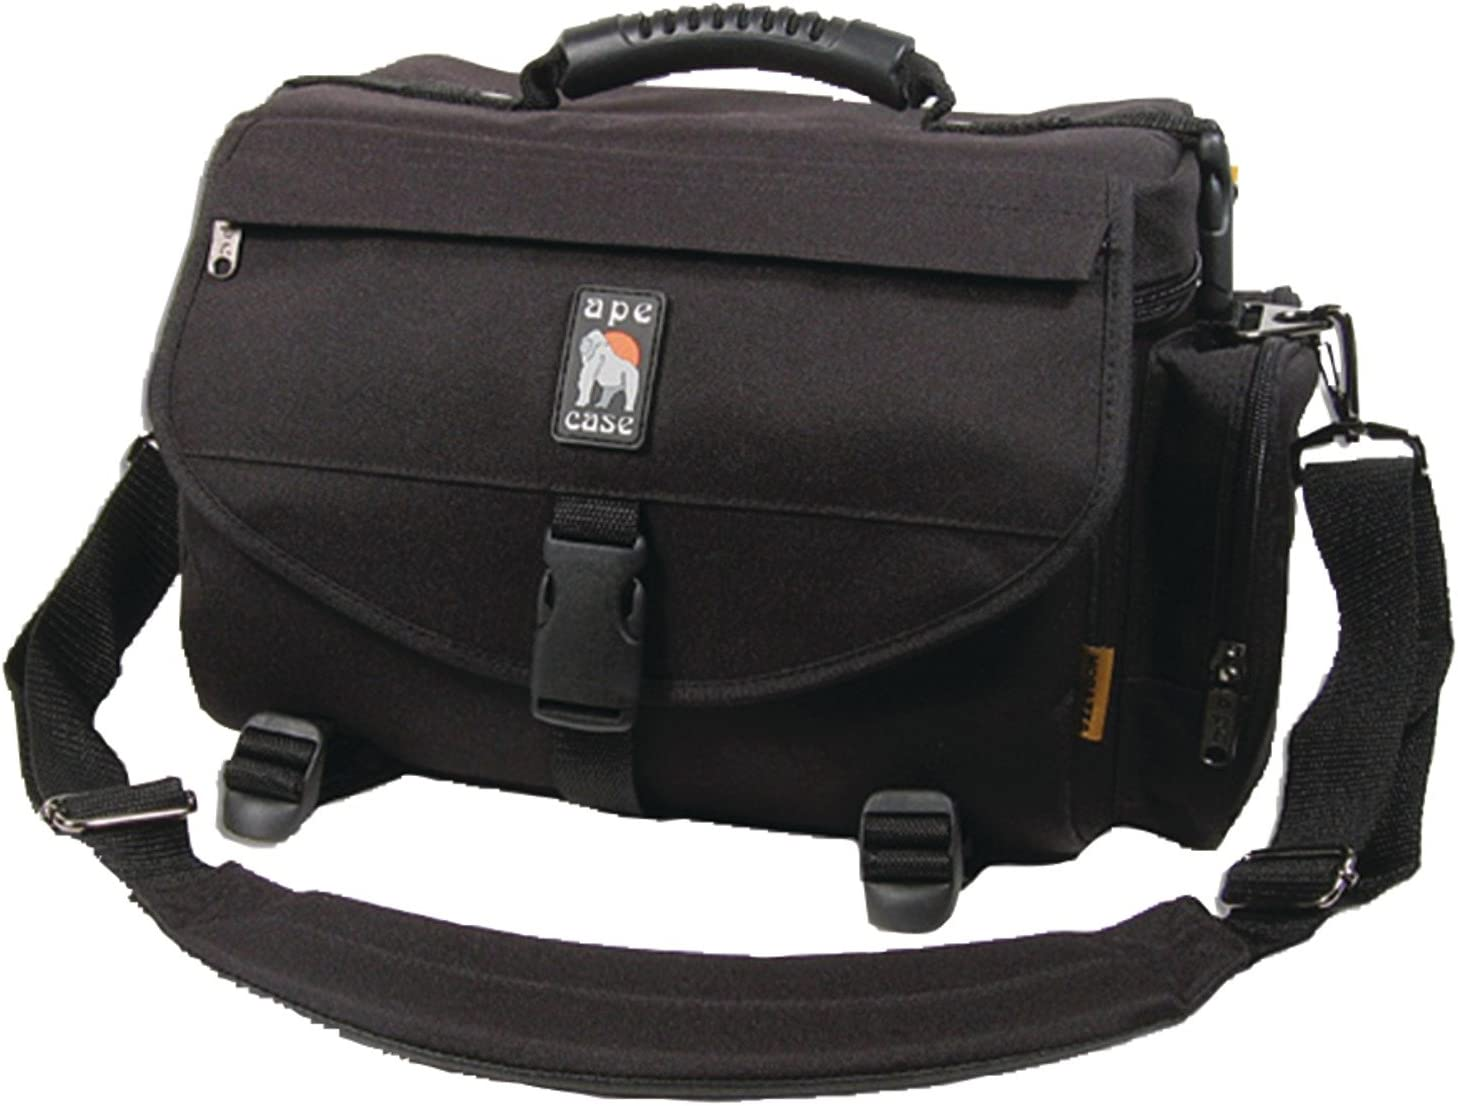 Ape Case Pro Medium Digital SLR and Video Camera Case (ACPRO1200)